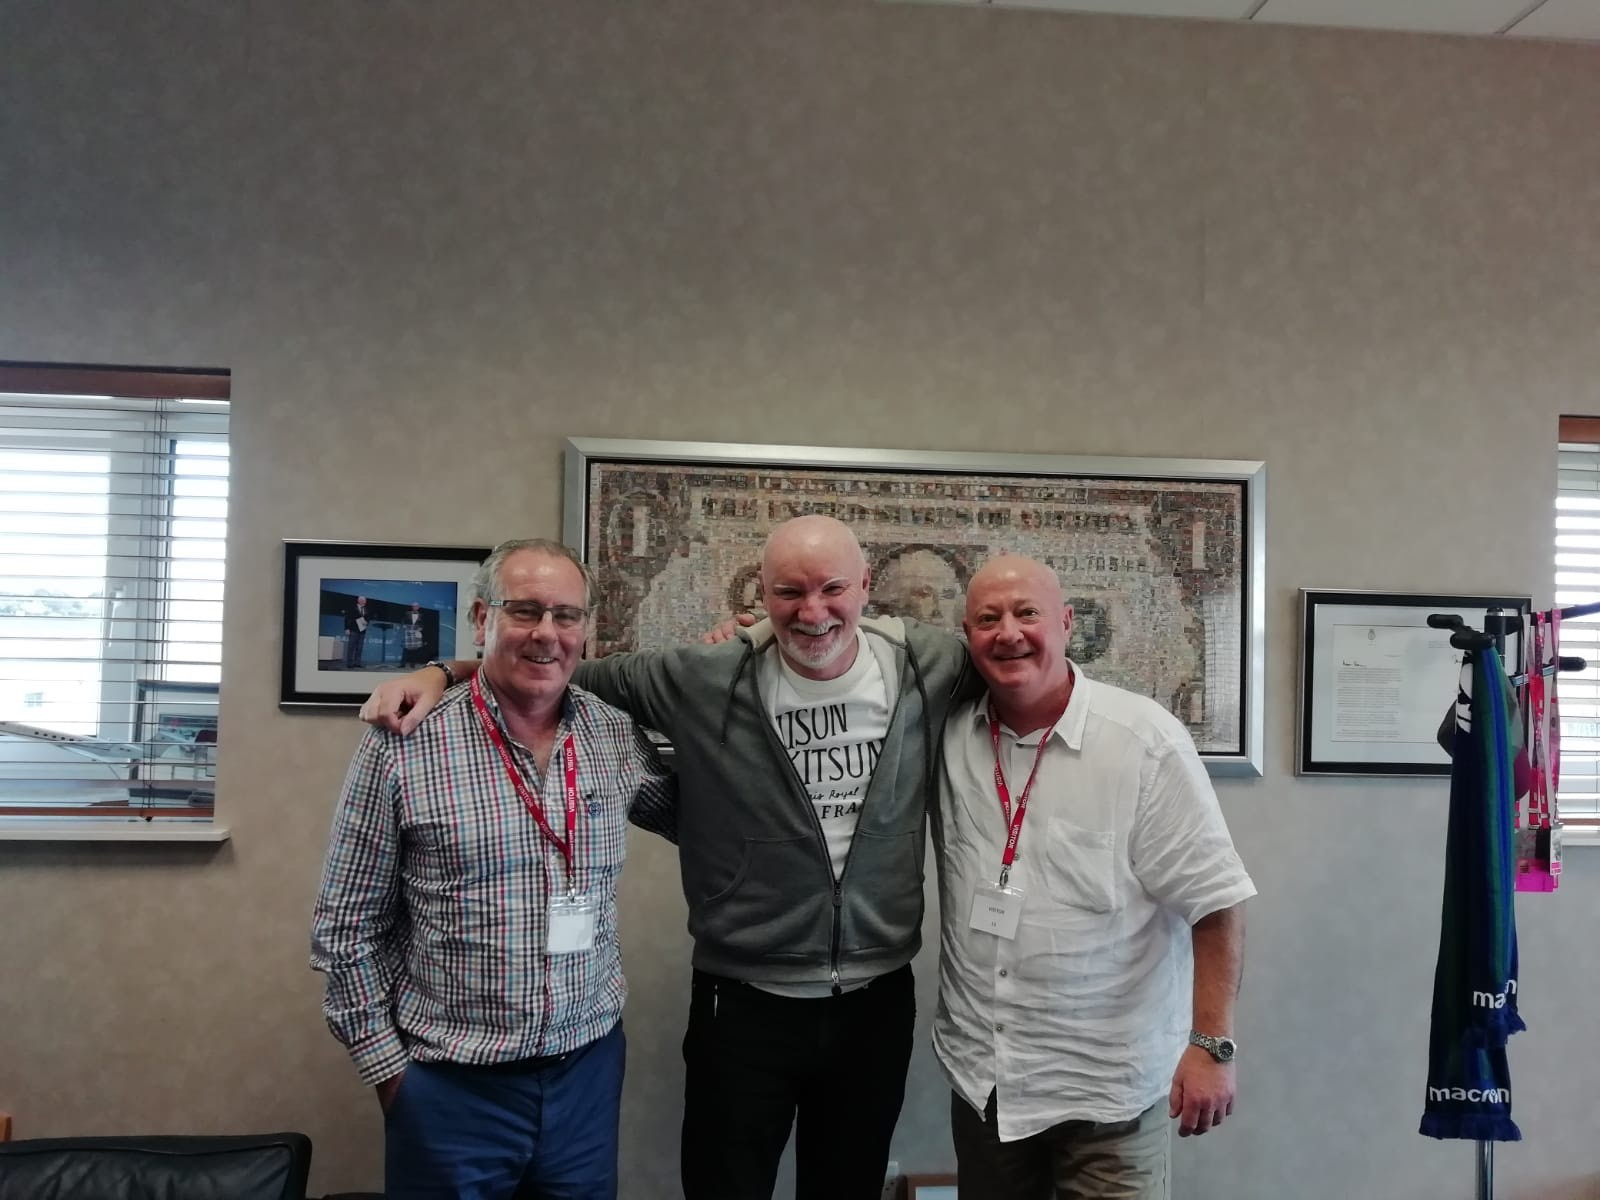 Brian and Garry had the pleasure of meeting  Sir Tom Hunter for further discussions on business development.